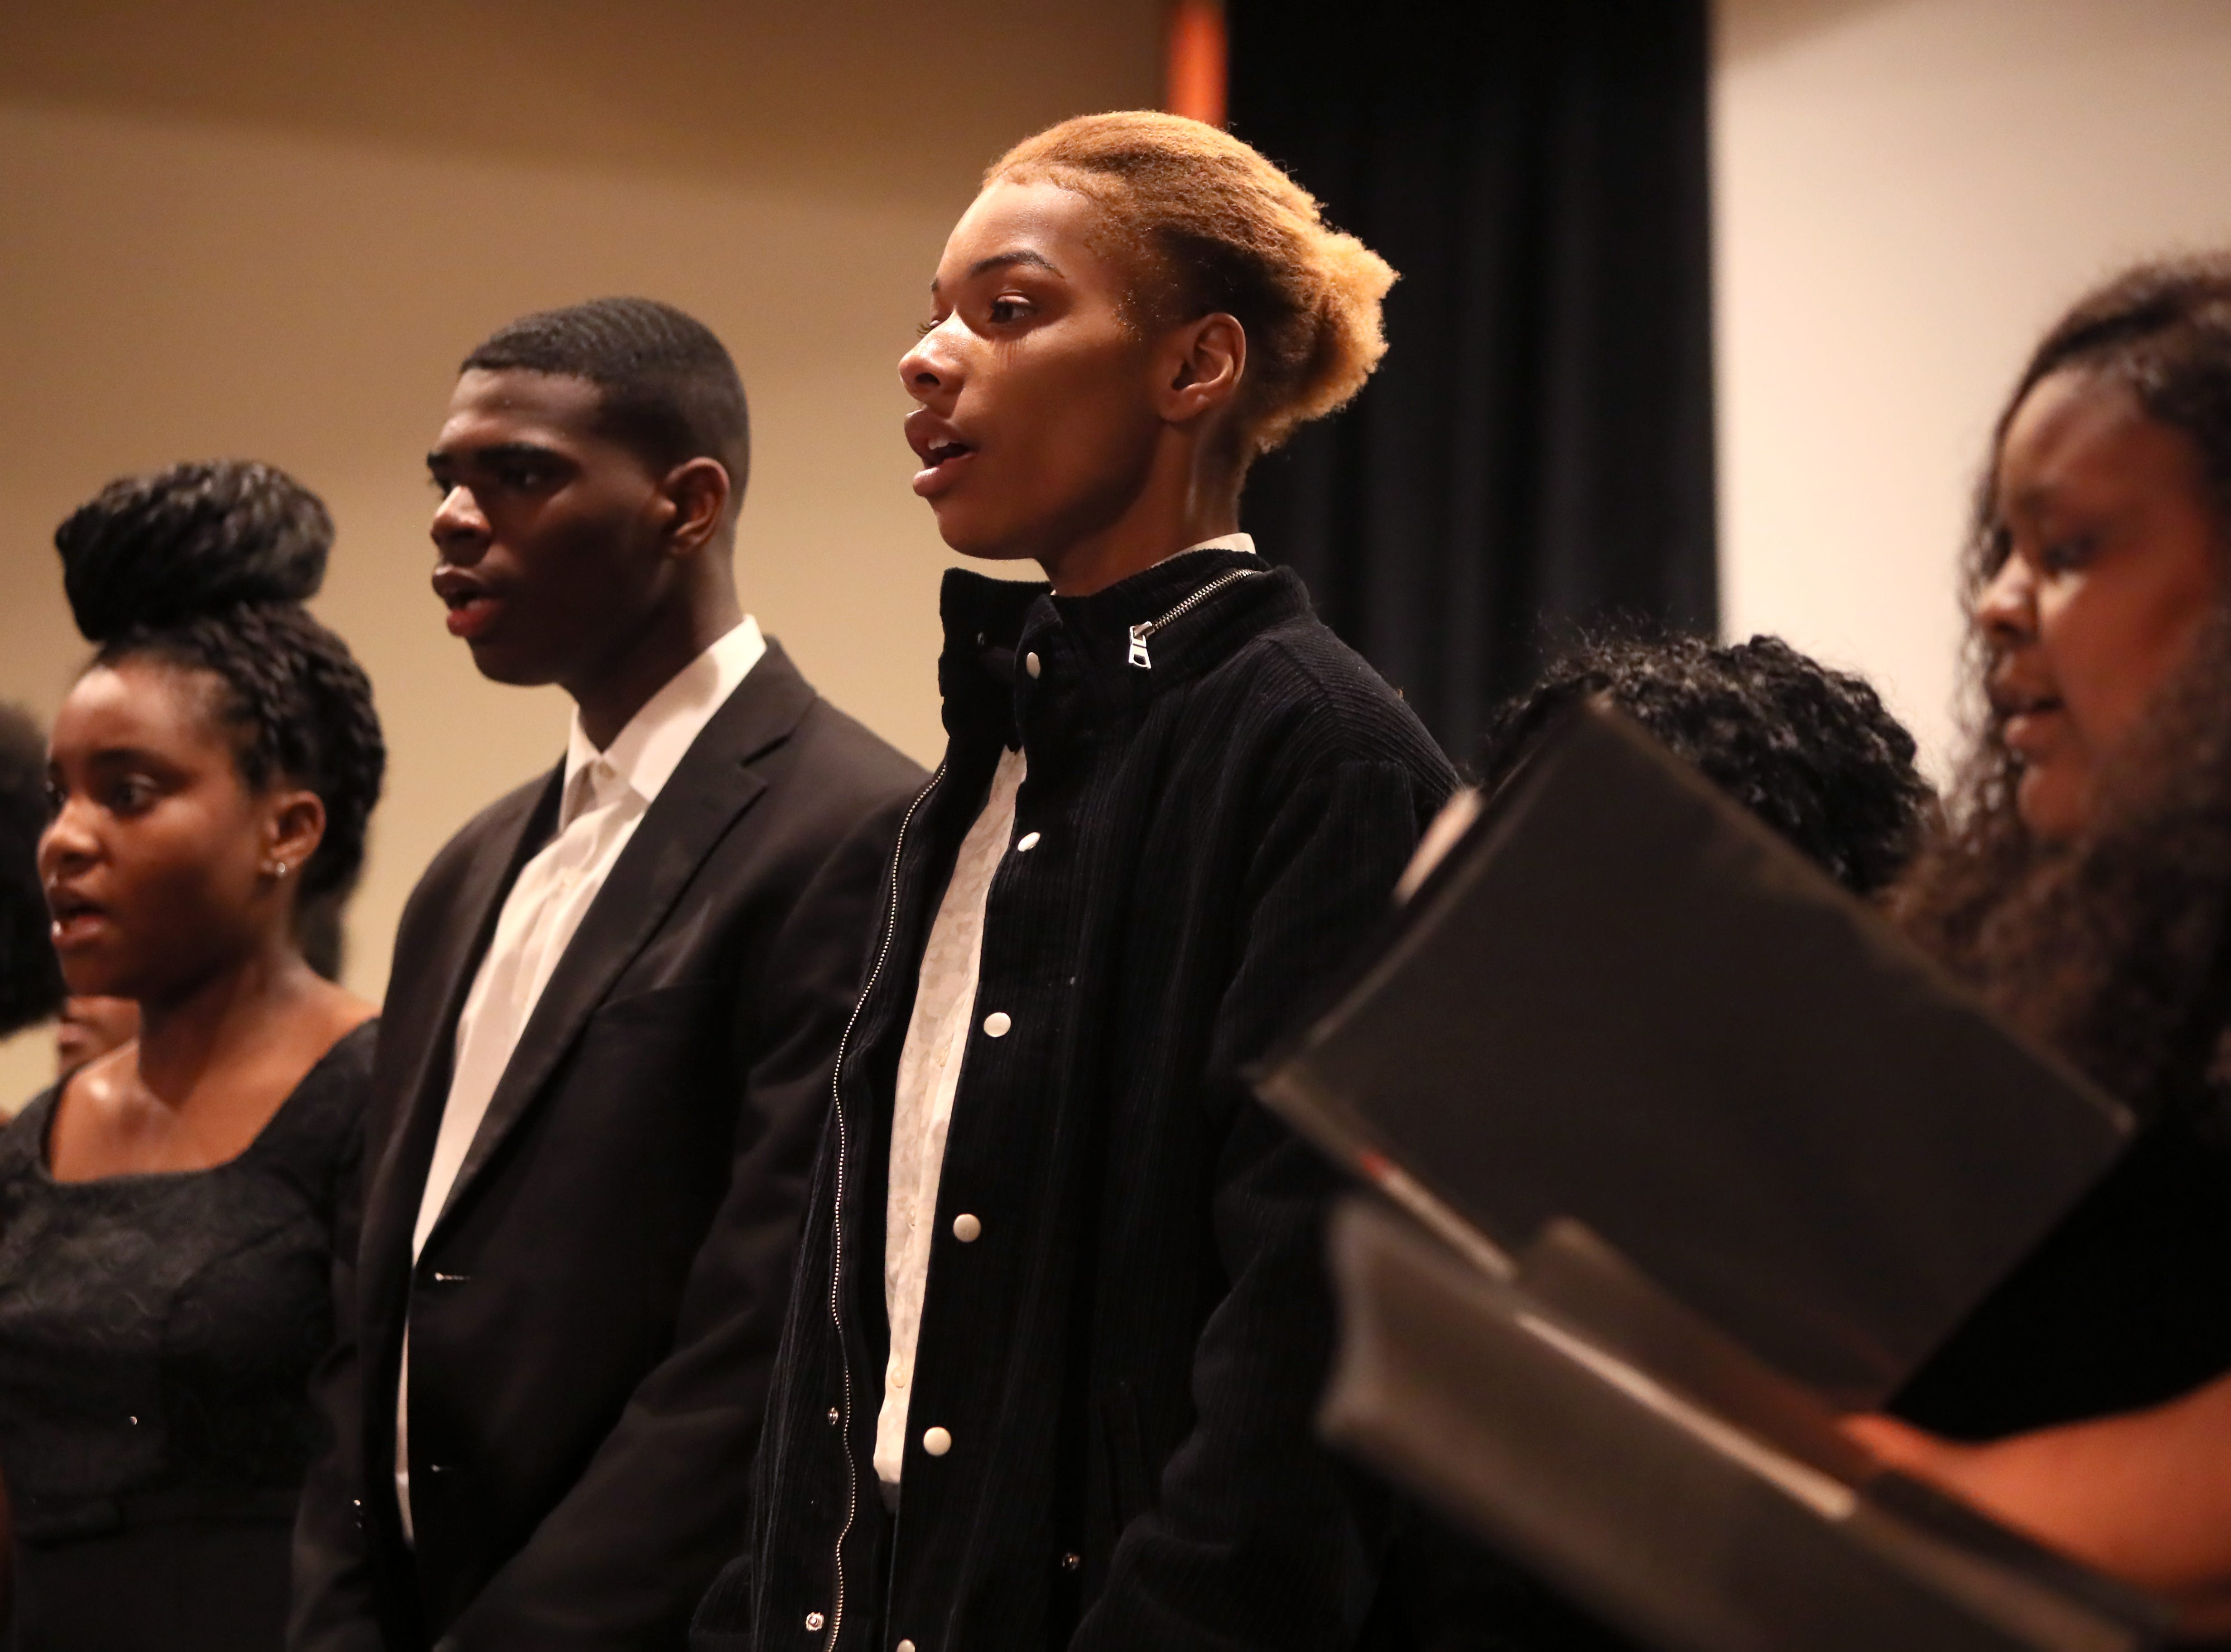 The Whitehaven High School Choir sings during a ceremony for Phyllis Aluko, who is sworn in as Shelby County's first female chief public defender at the Walter L. Bailey, Jr. Criminal Justice Center on Tuesday, April 16, 2019.